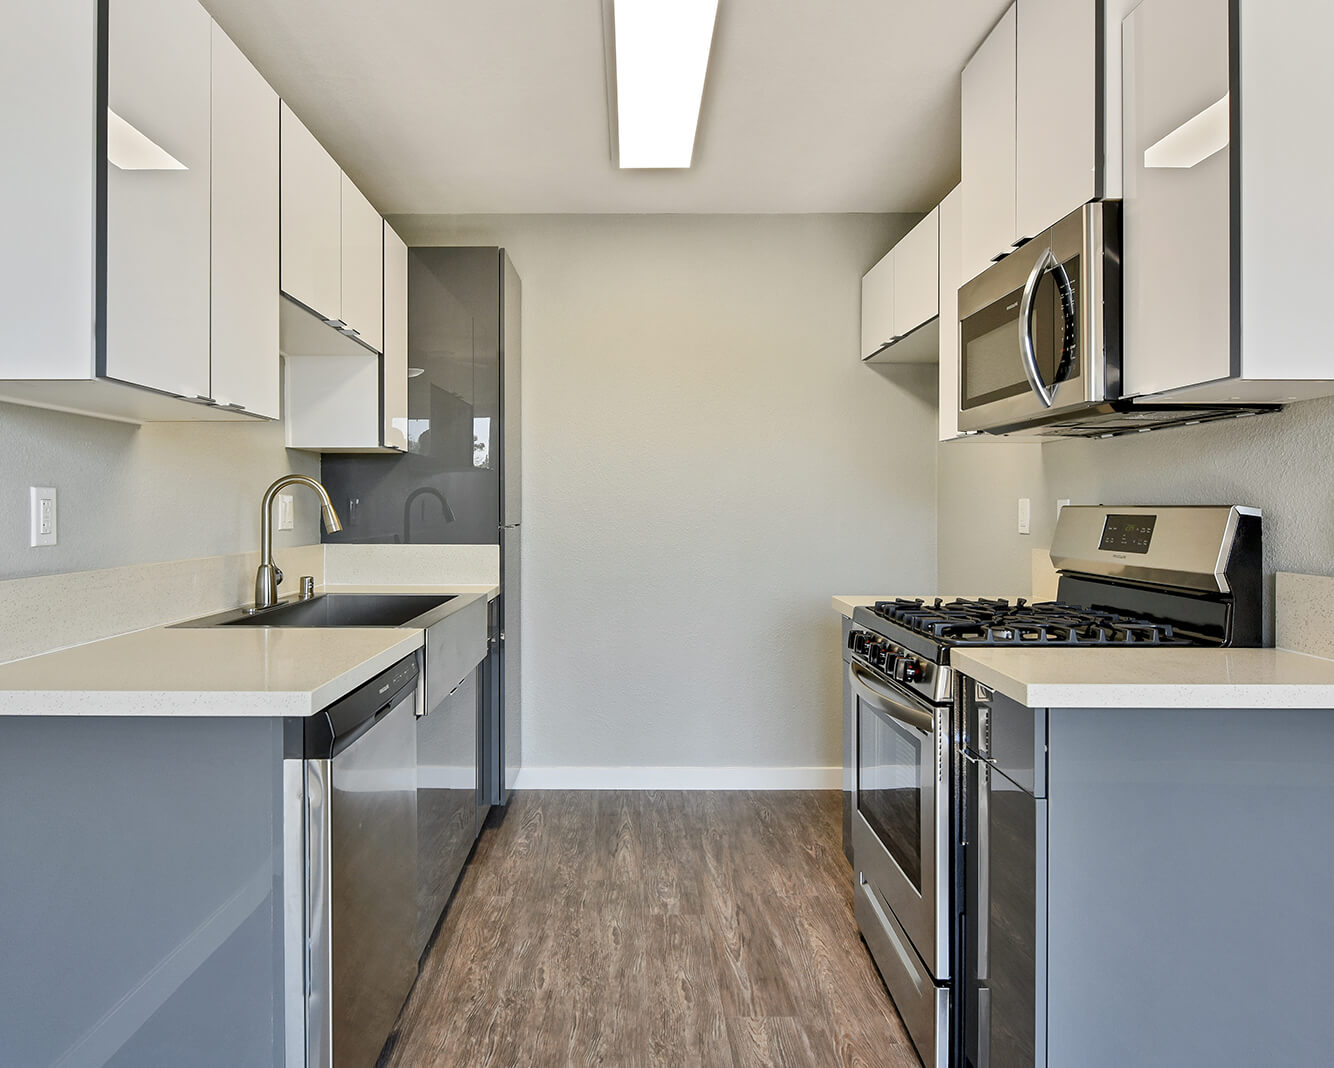 kitchen with stainless steel appliances and new cabinets